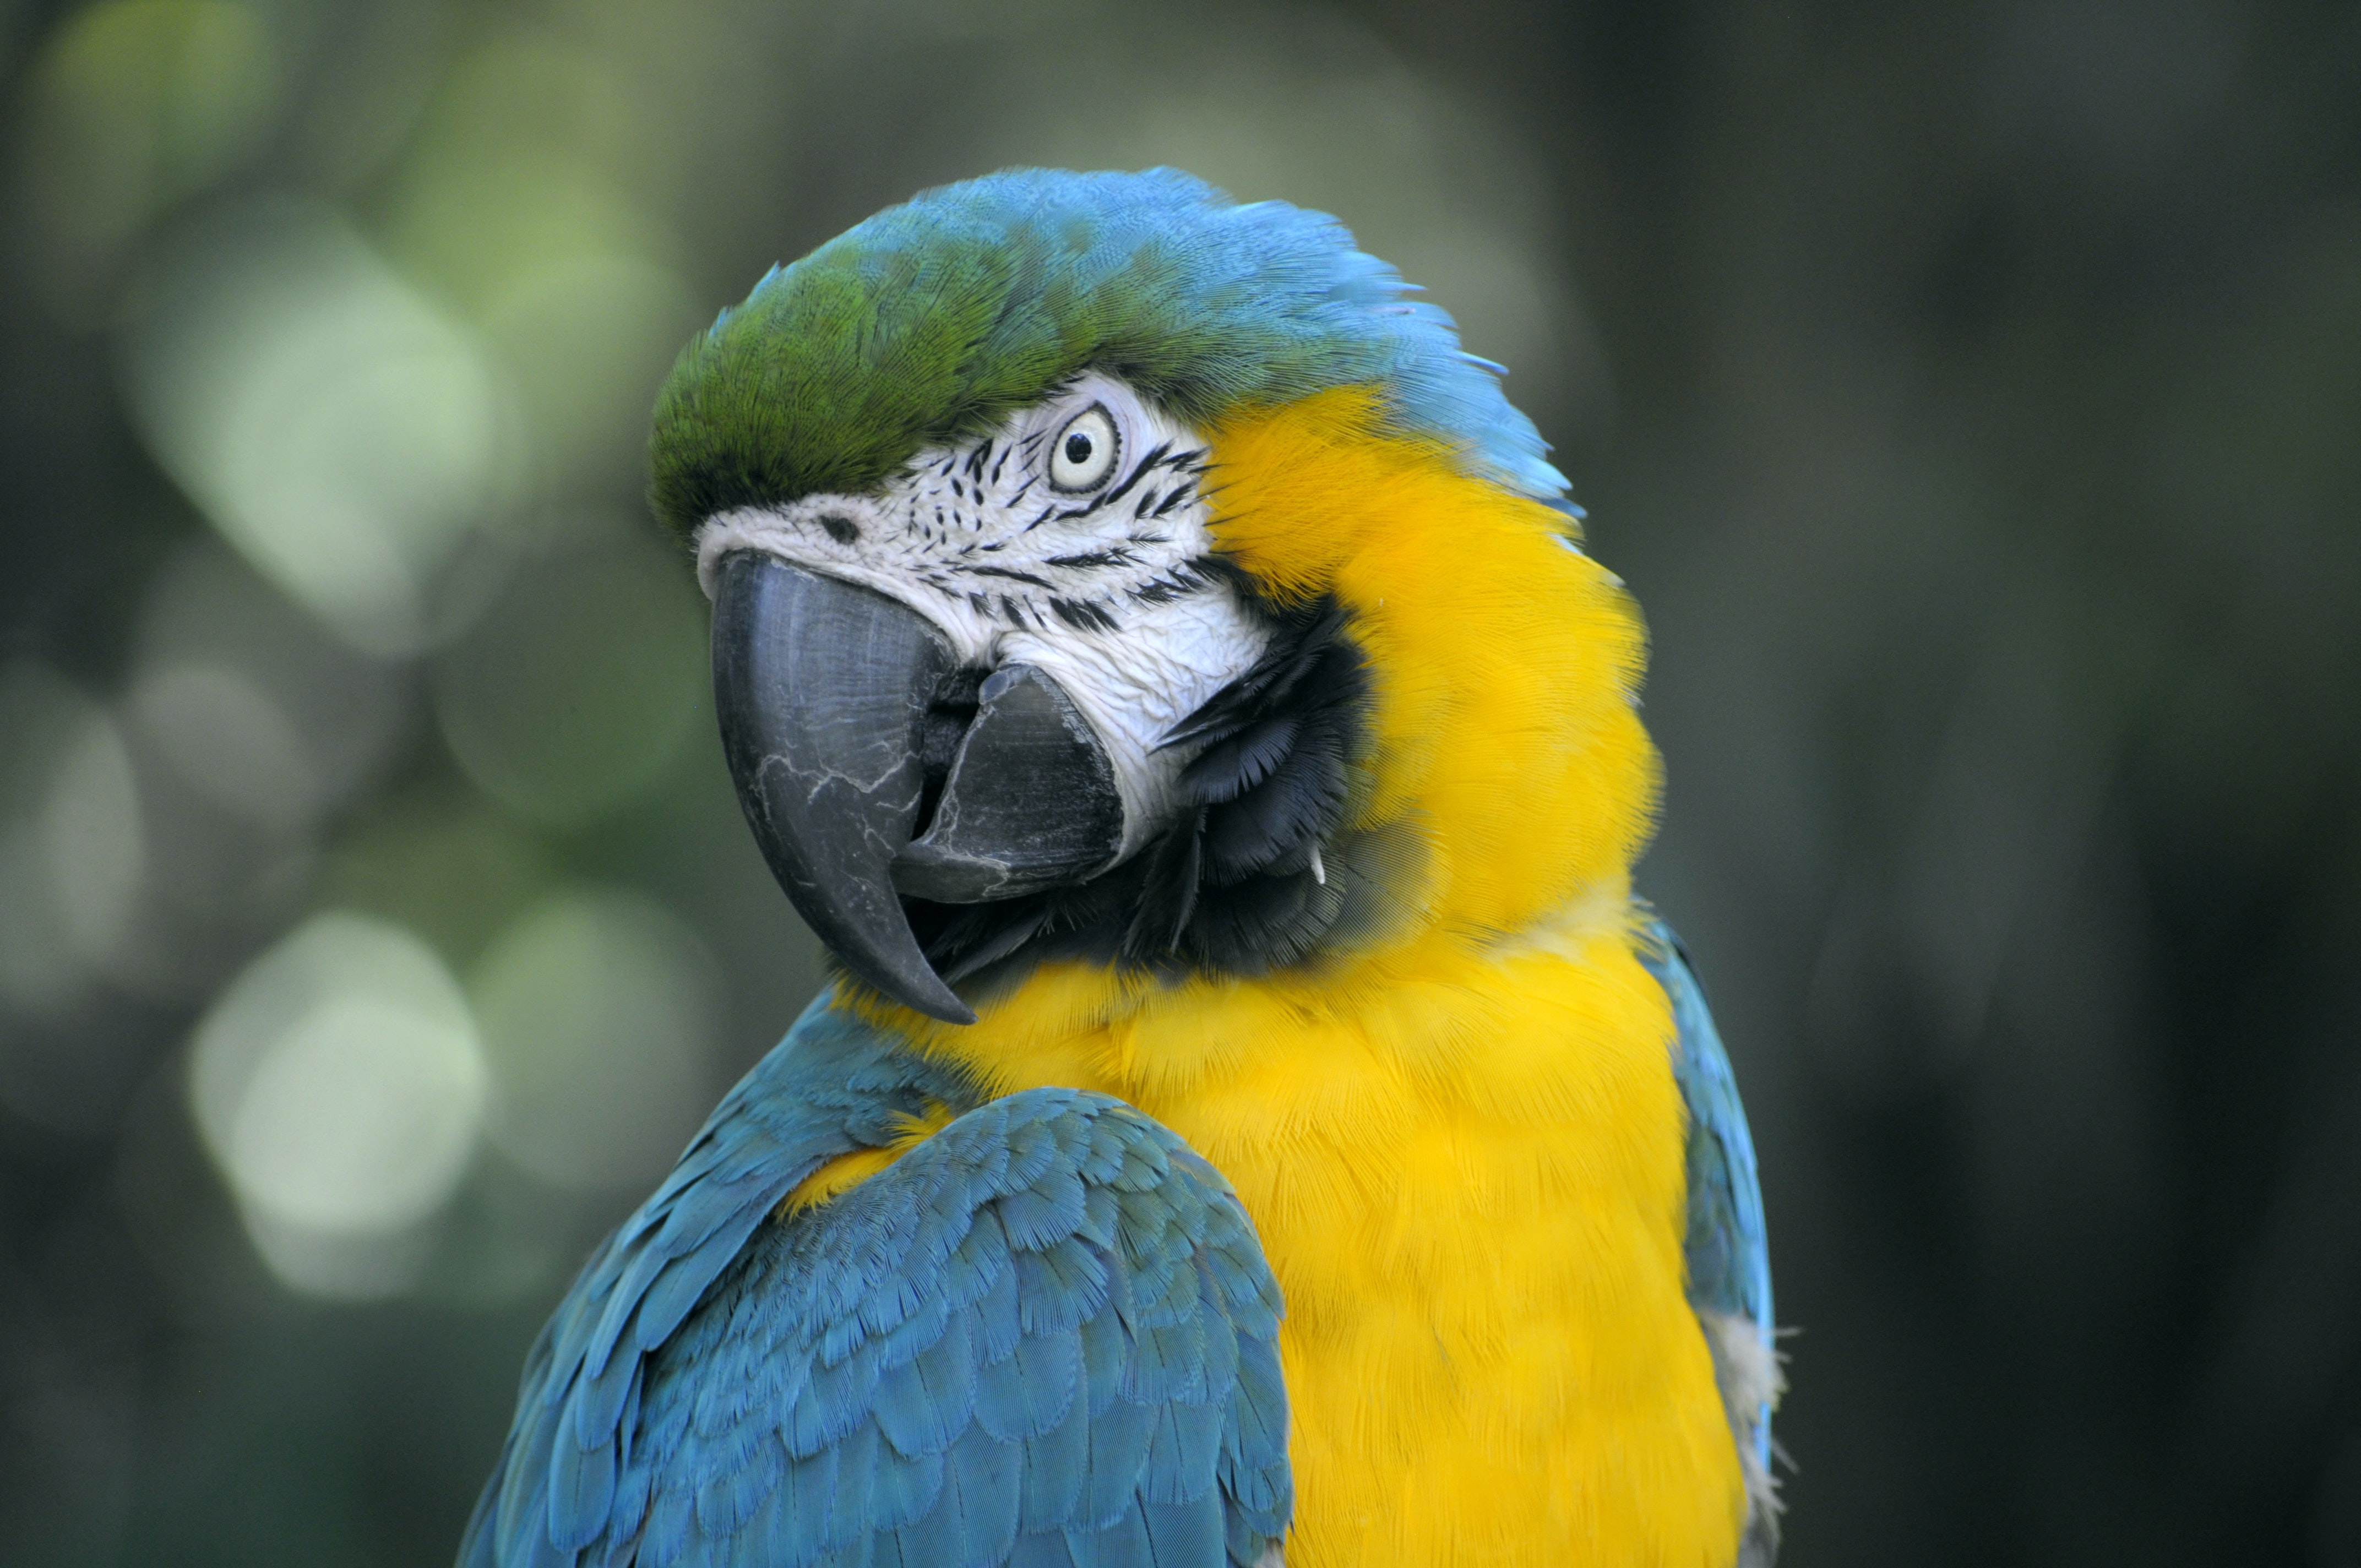 Macro of a parrot with vibrant blue,yellow and green colors cocking its head to the side